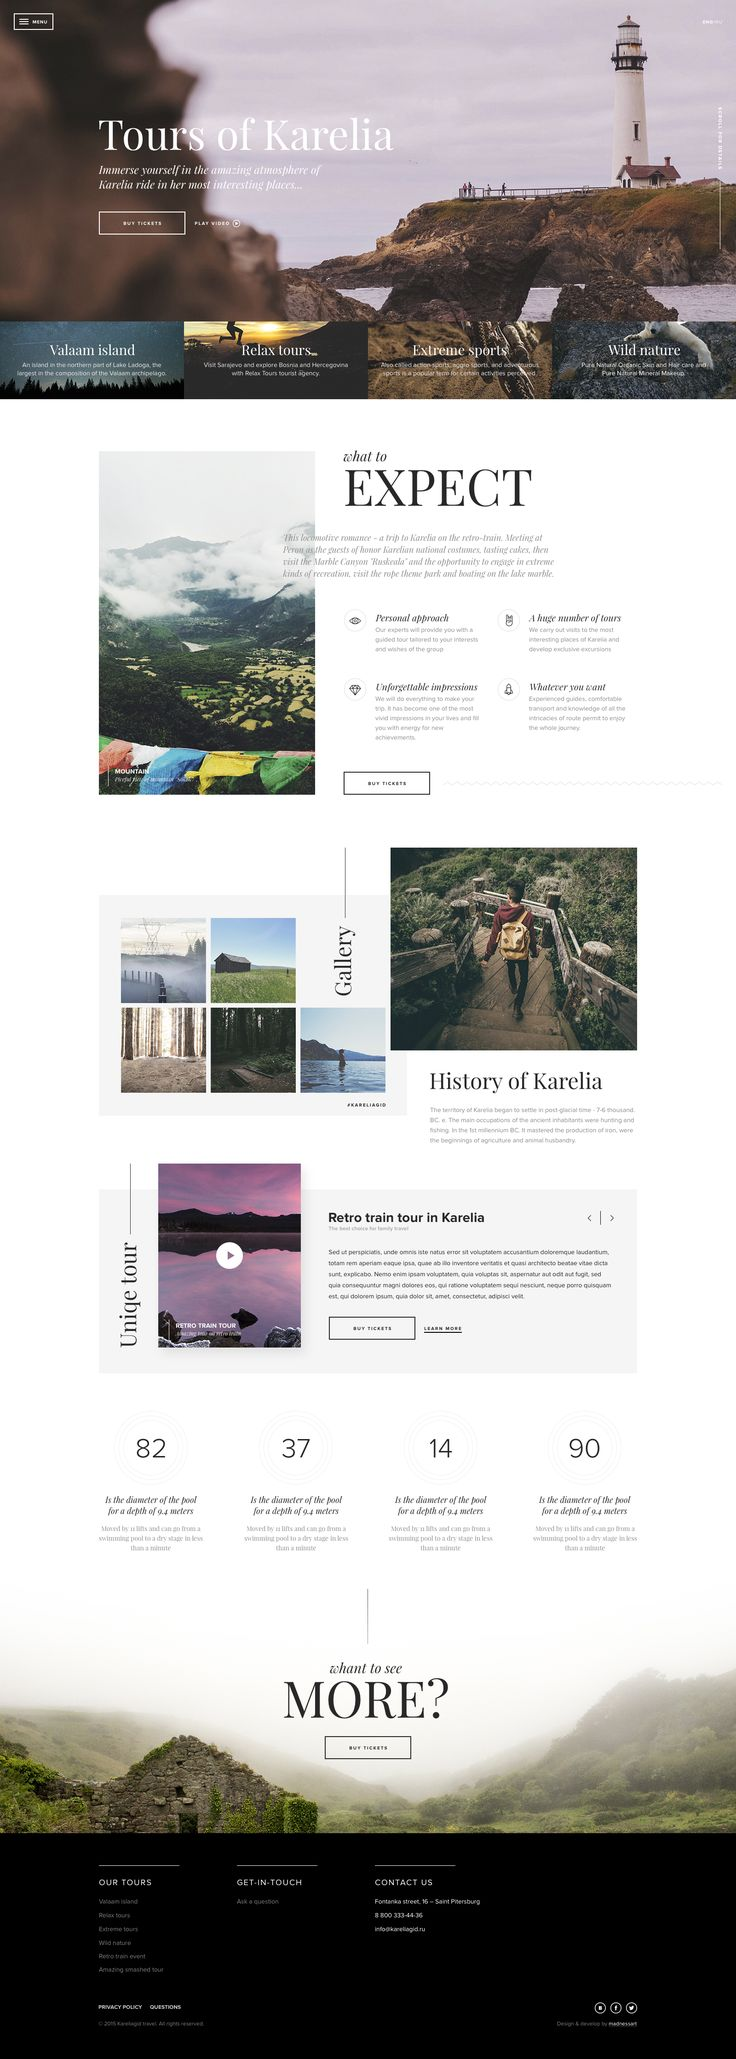 Tours of Kareliya by Tema Streltsov #web #design #layout #travel